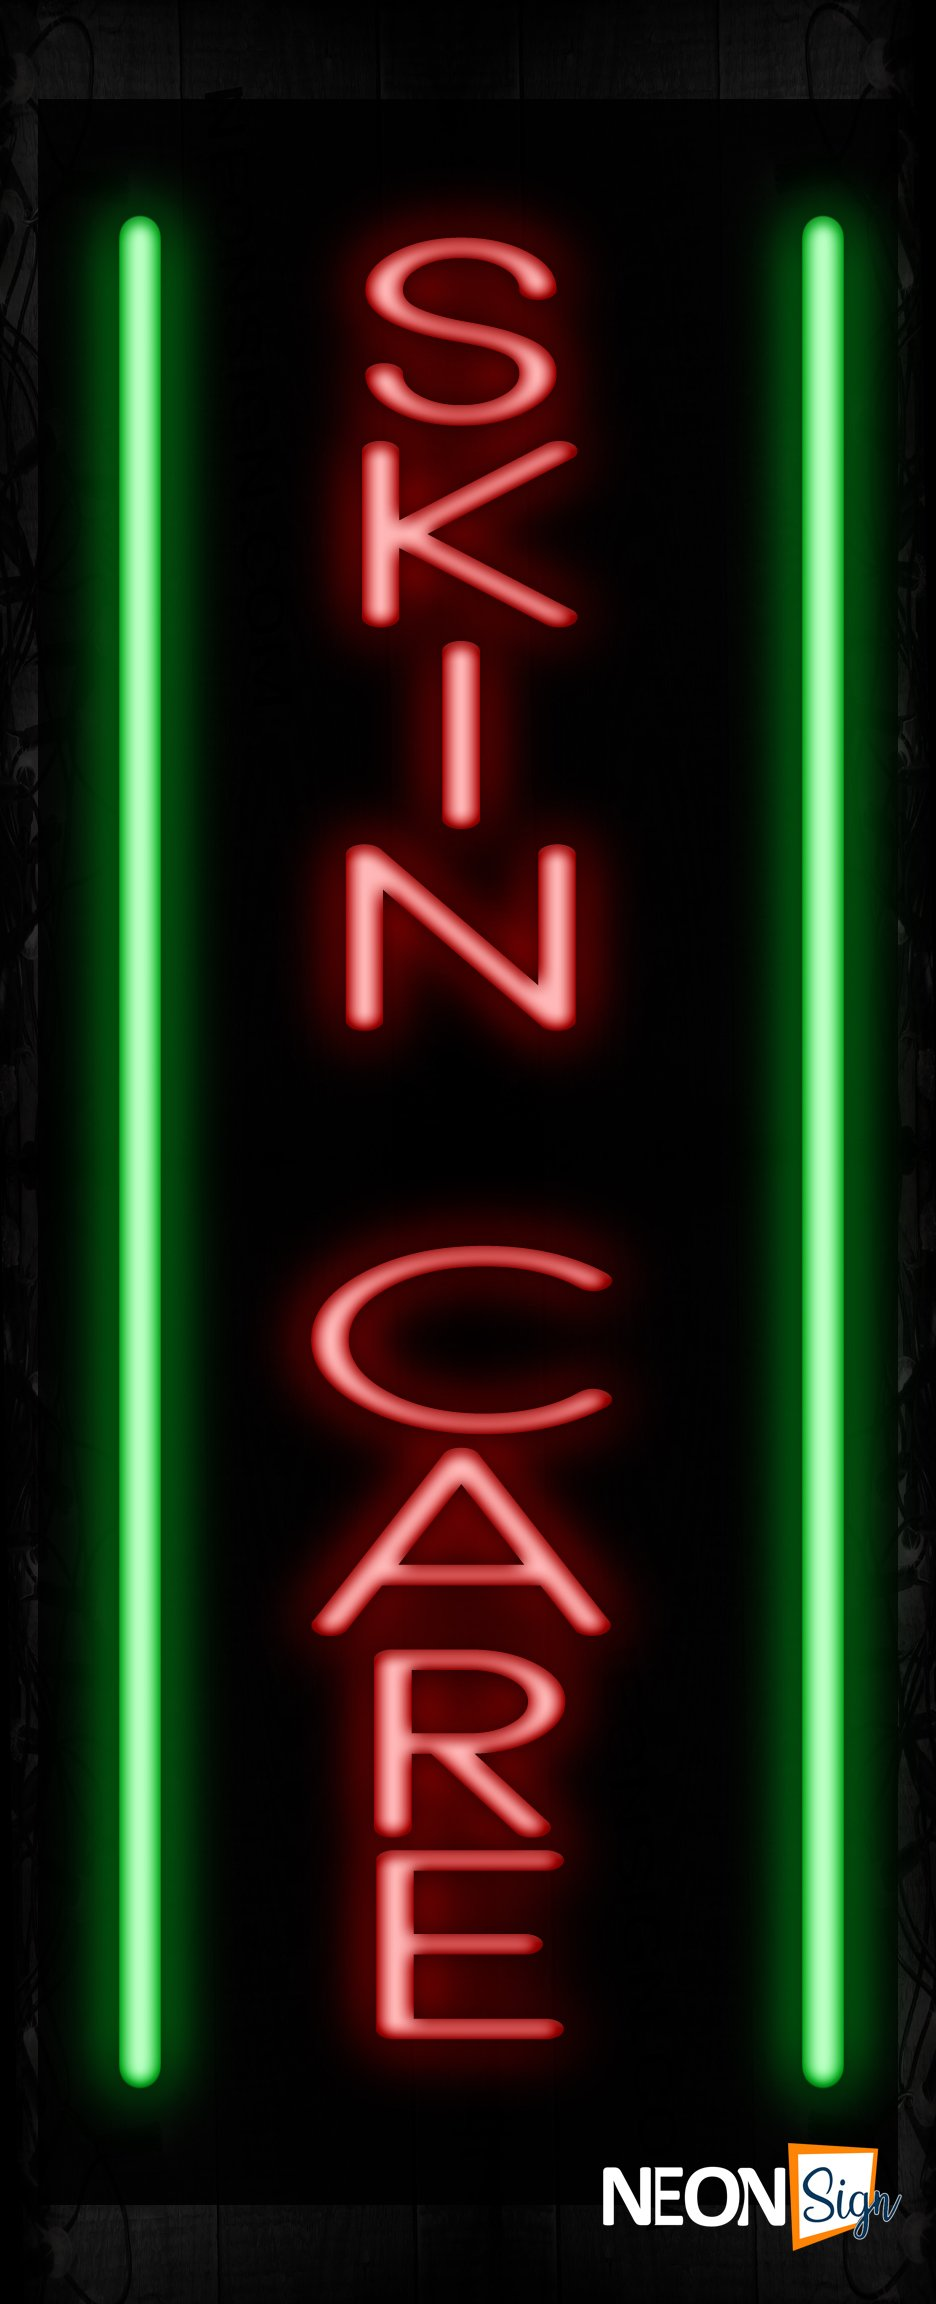 Image of Skin Care With Green Lines (Vertical) Neon Sign